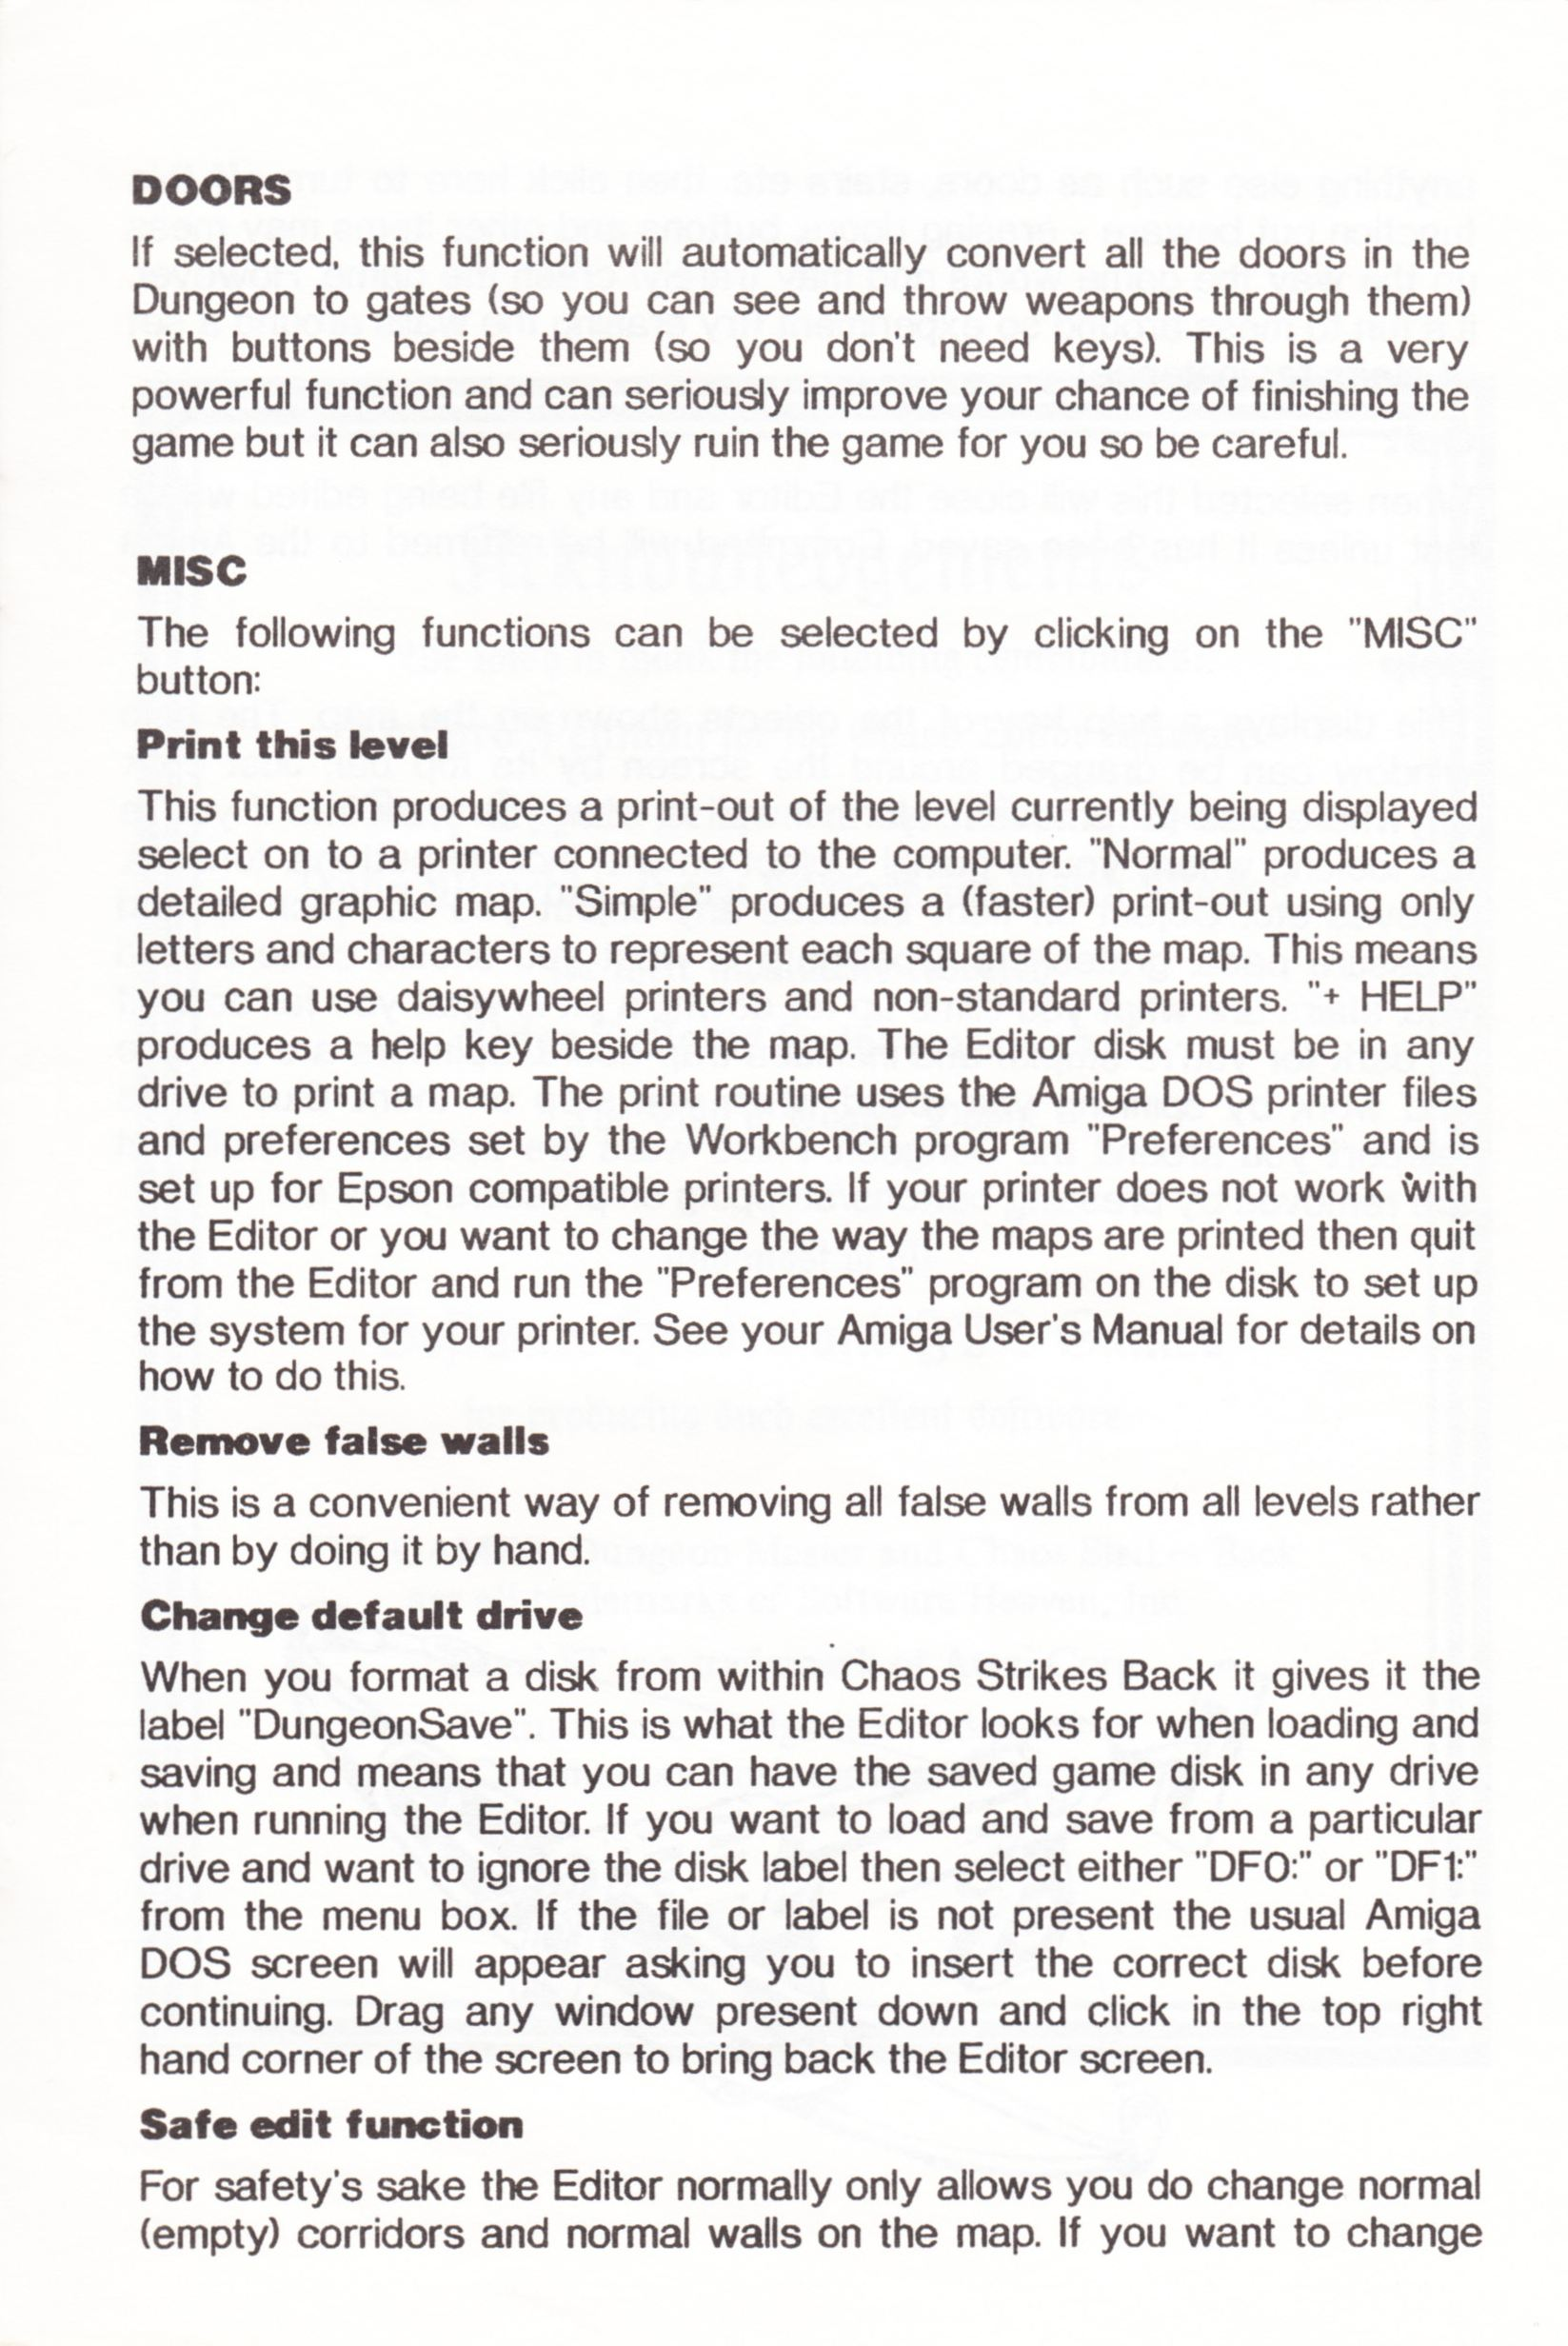 Tool - The Chaos Editor - UK - Atari ST - Manual - Page 019 - Scan